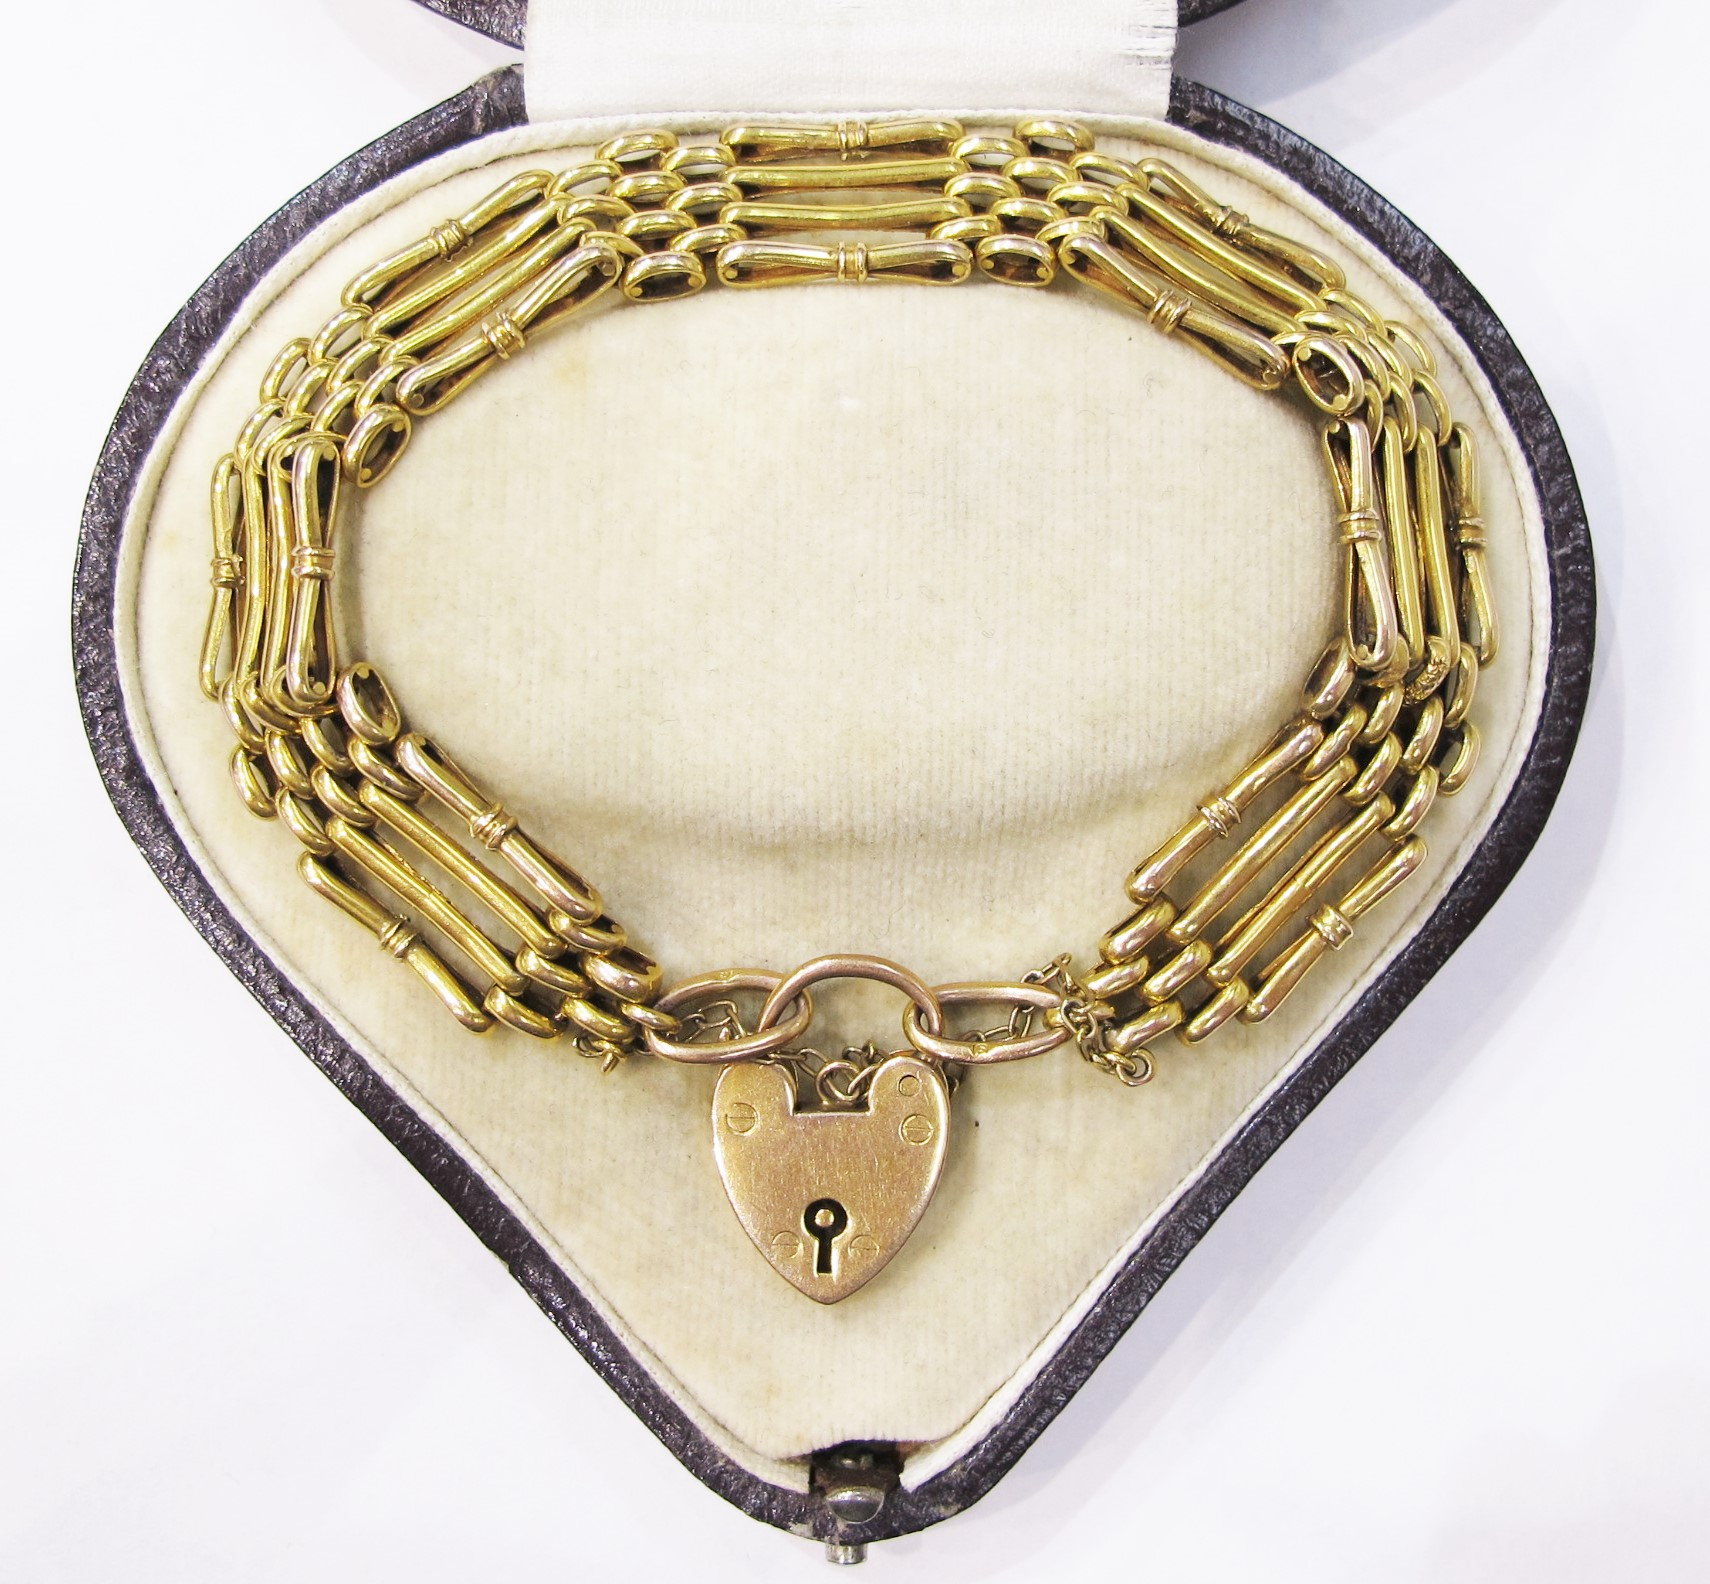 English gate bracelet in 9k yellow gold, c. 1900. Currently available at Gray & Davis.